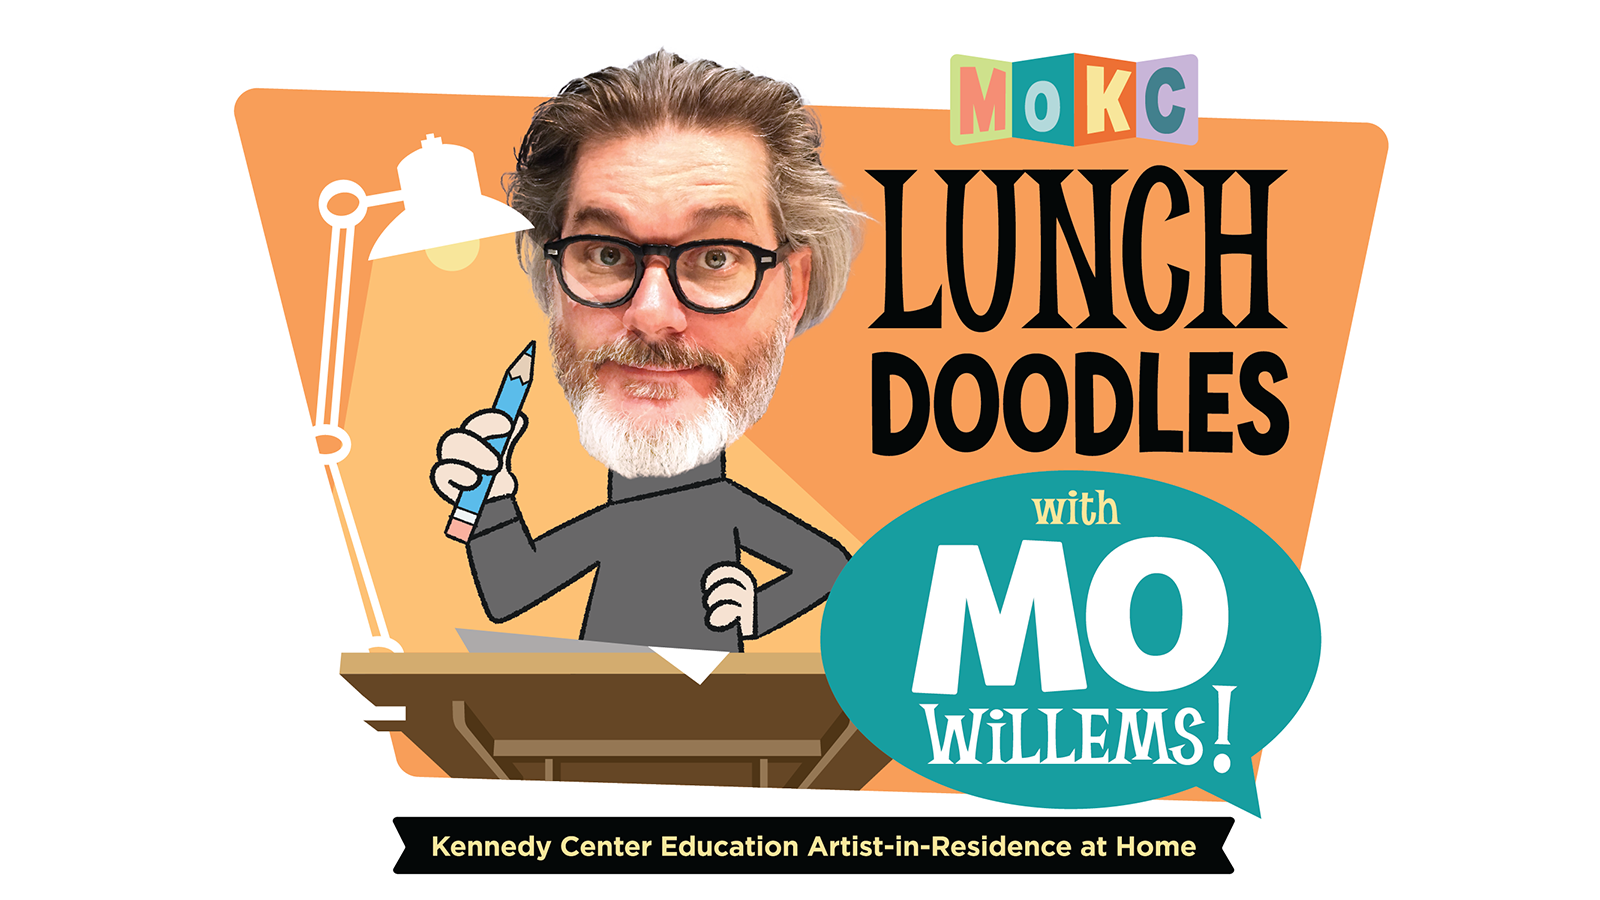 Lunch doodles with mr mo a picture of mr mo willems holding a pencil next to a desk with a lamp